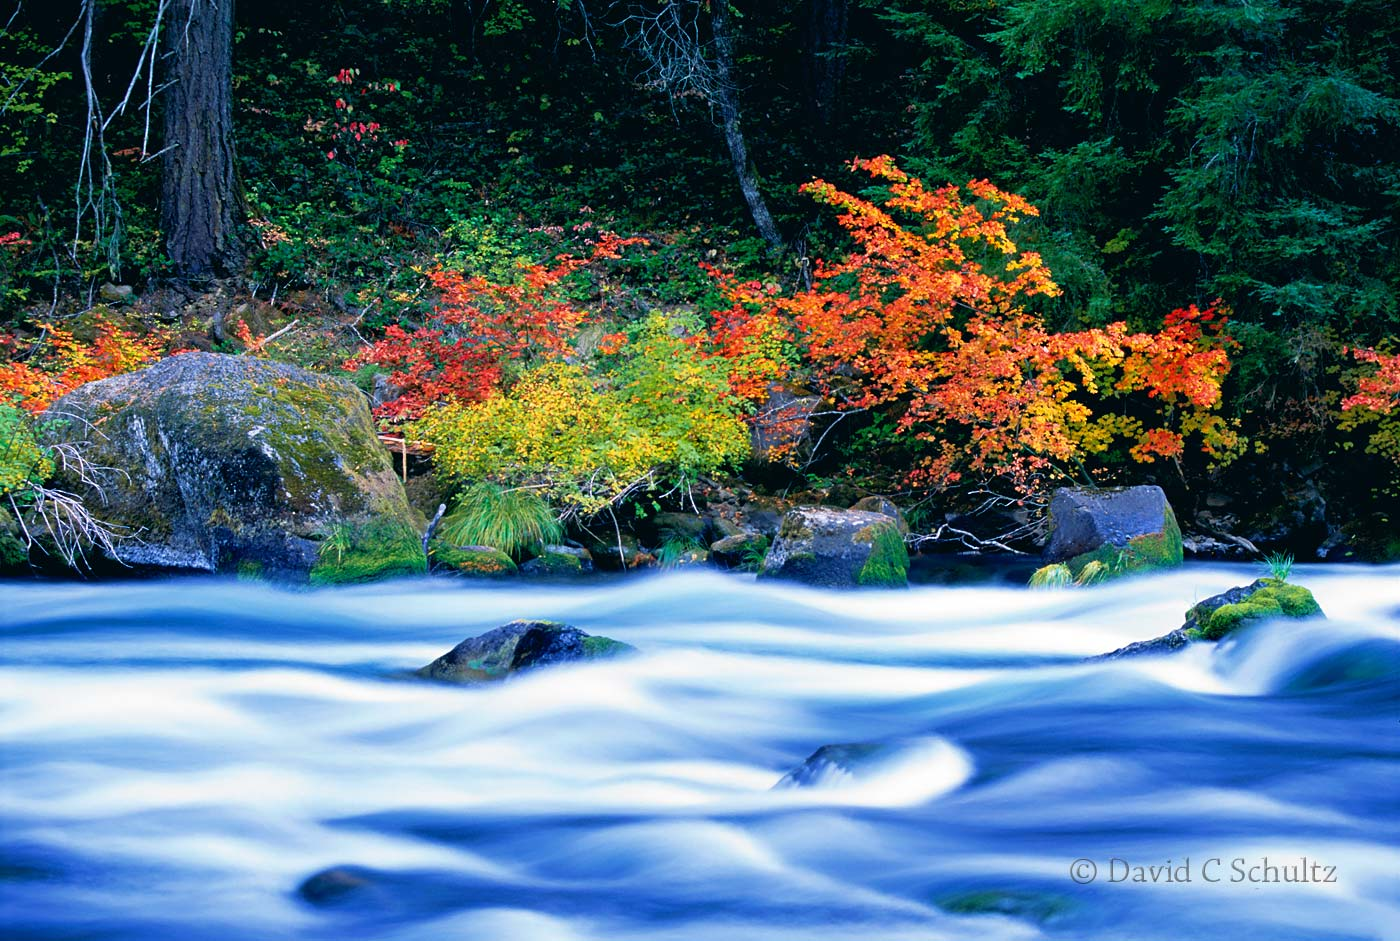 North Umpqua River, Oregon - Image #3-2363